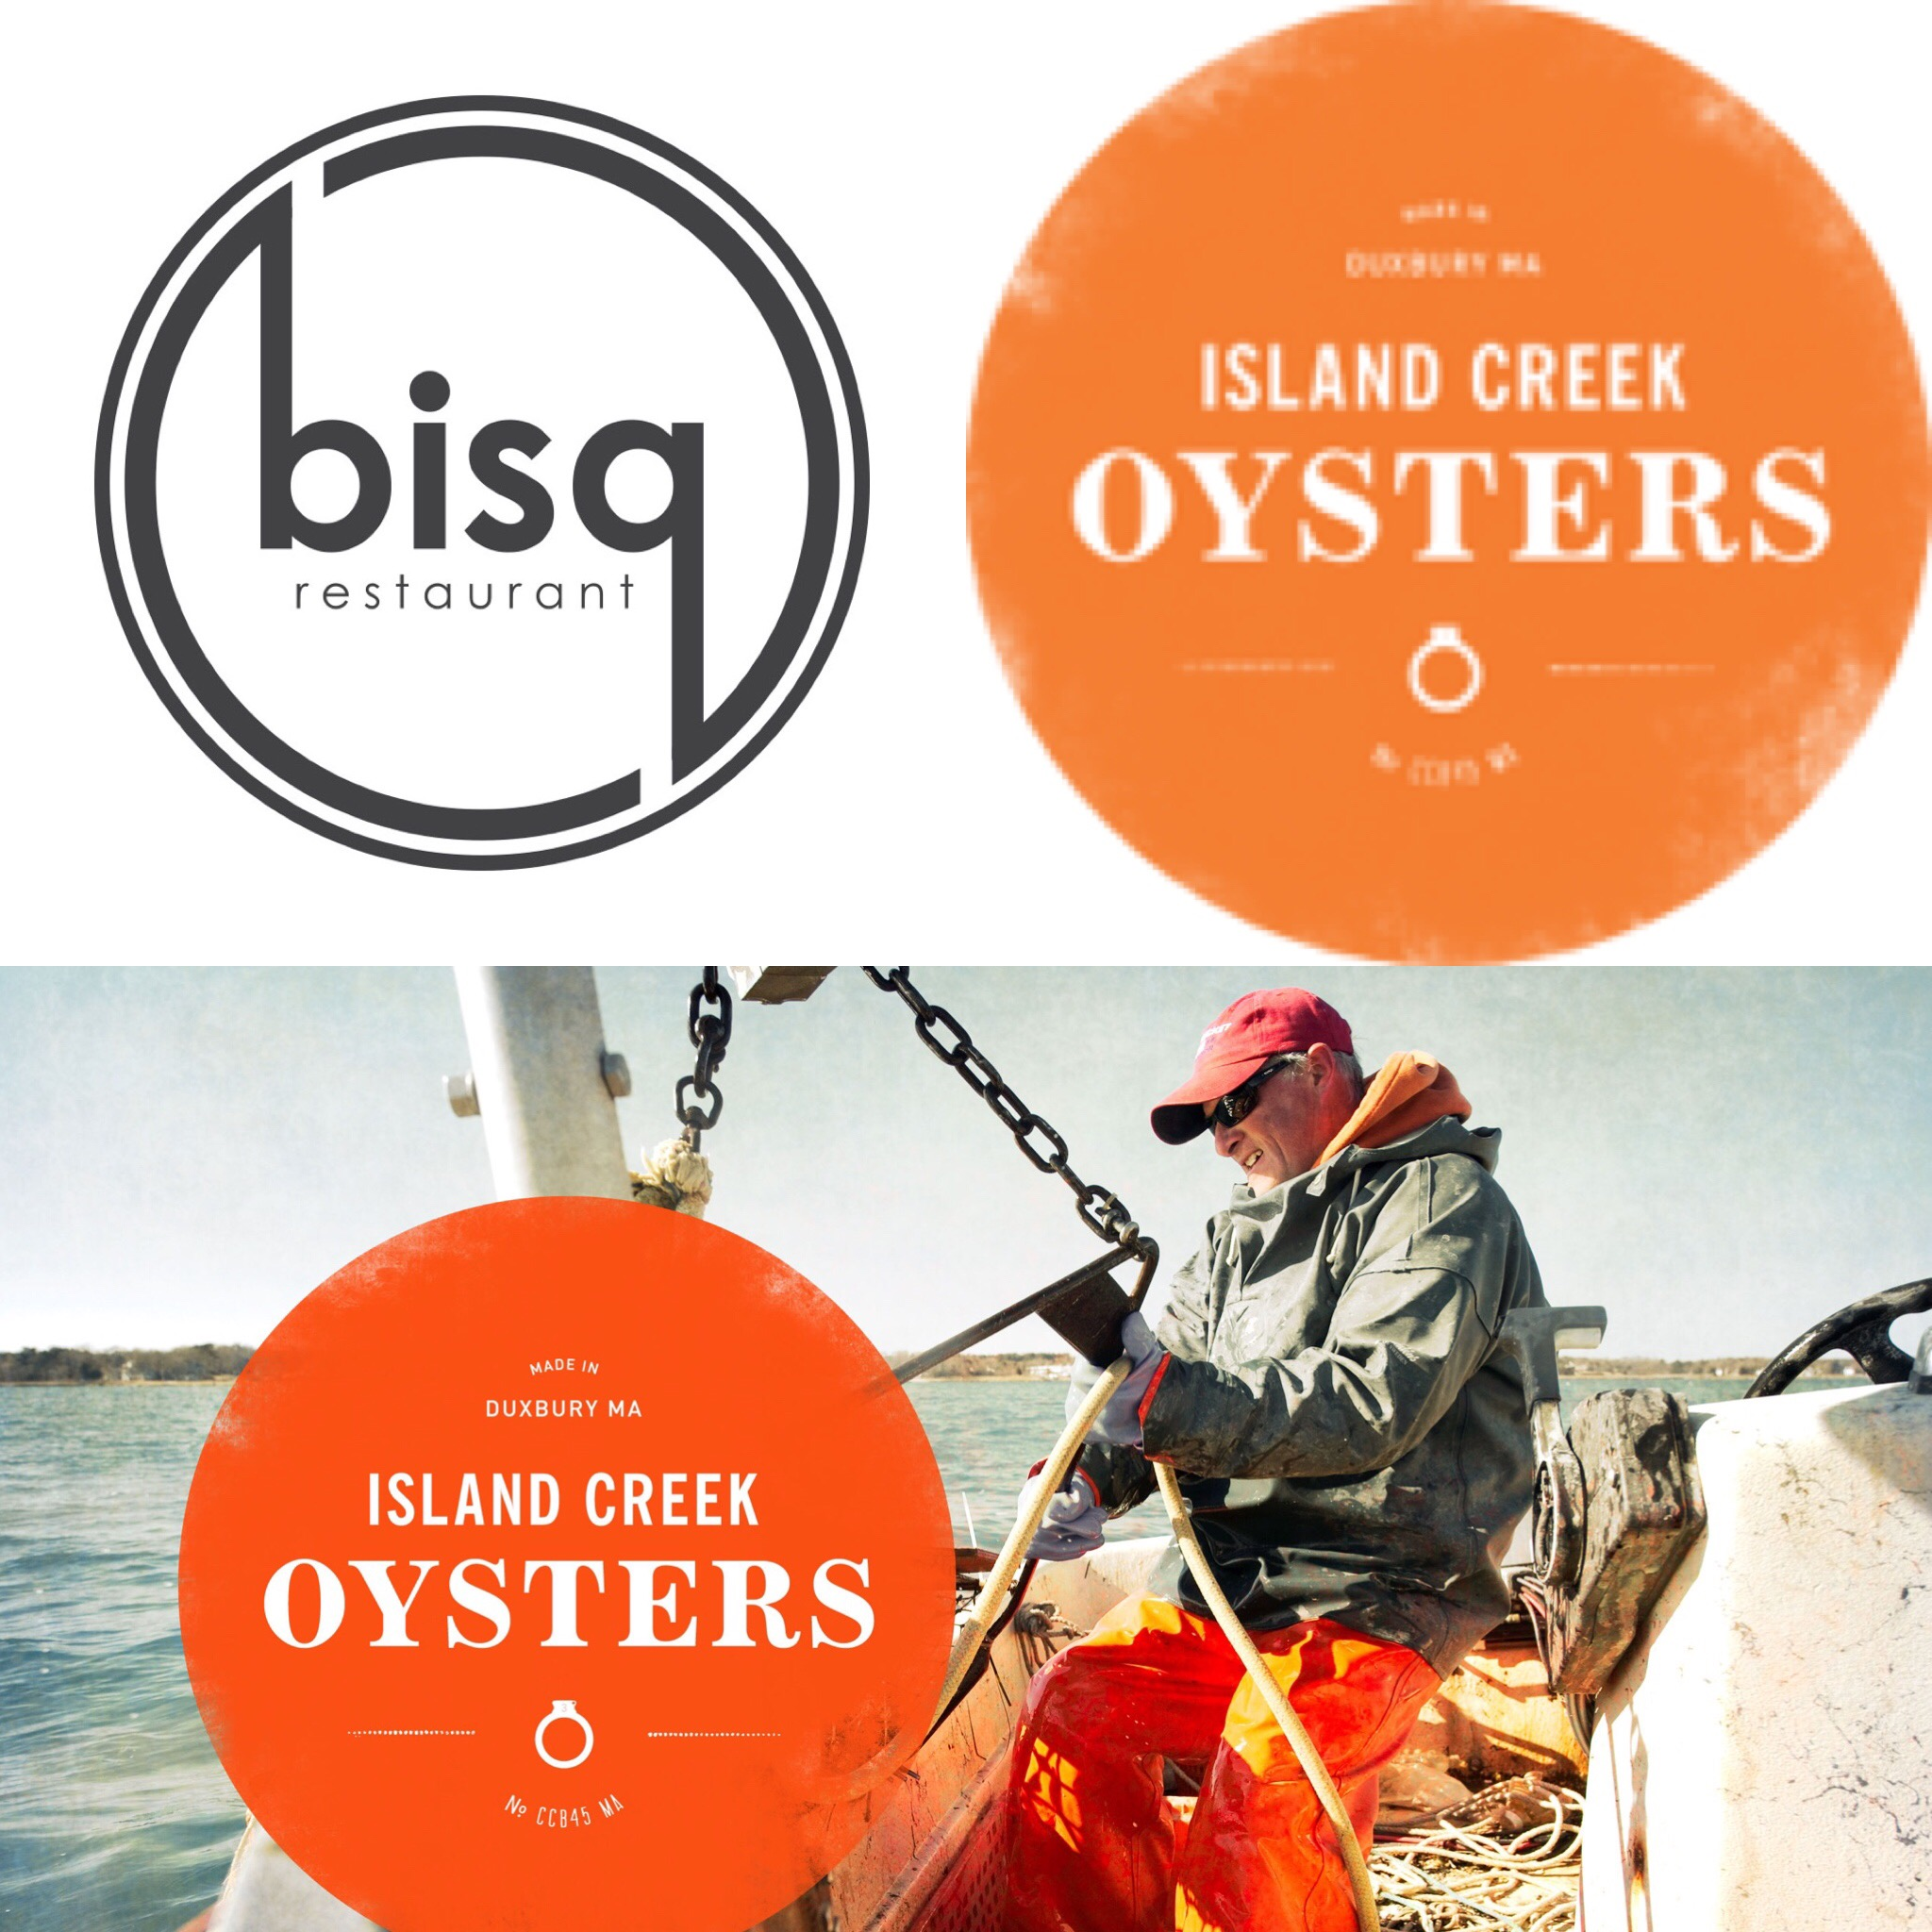 BISq Cevicheria & Island Creek Oyster Pop-Up [05/07/17]